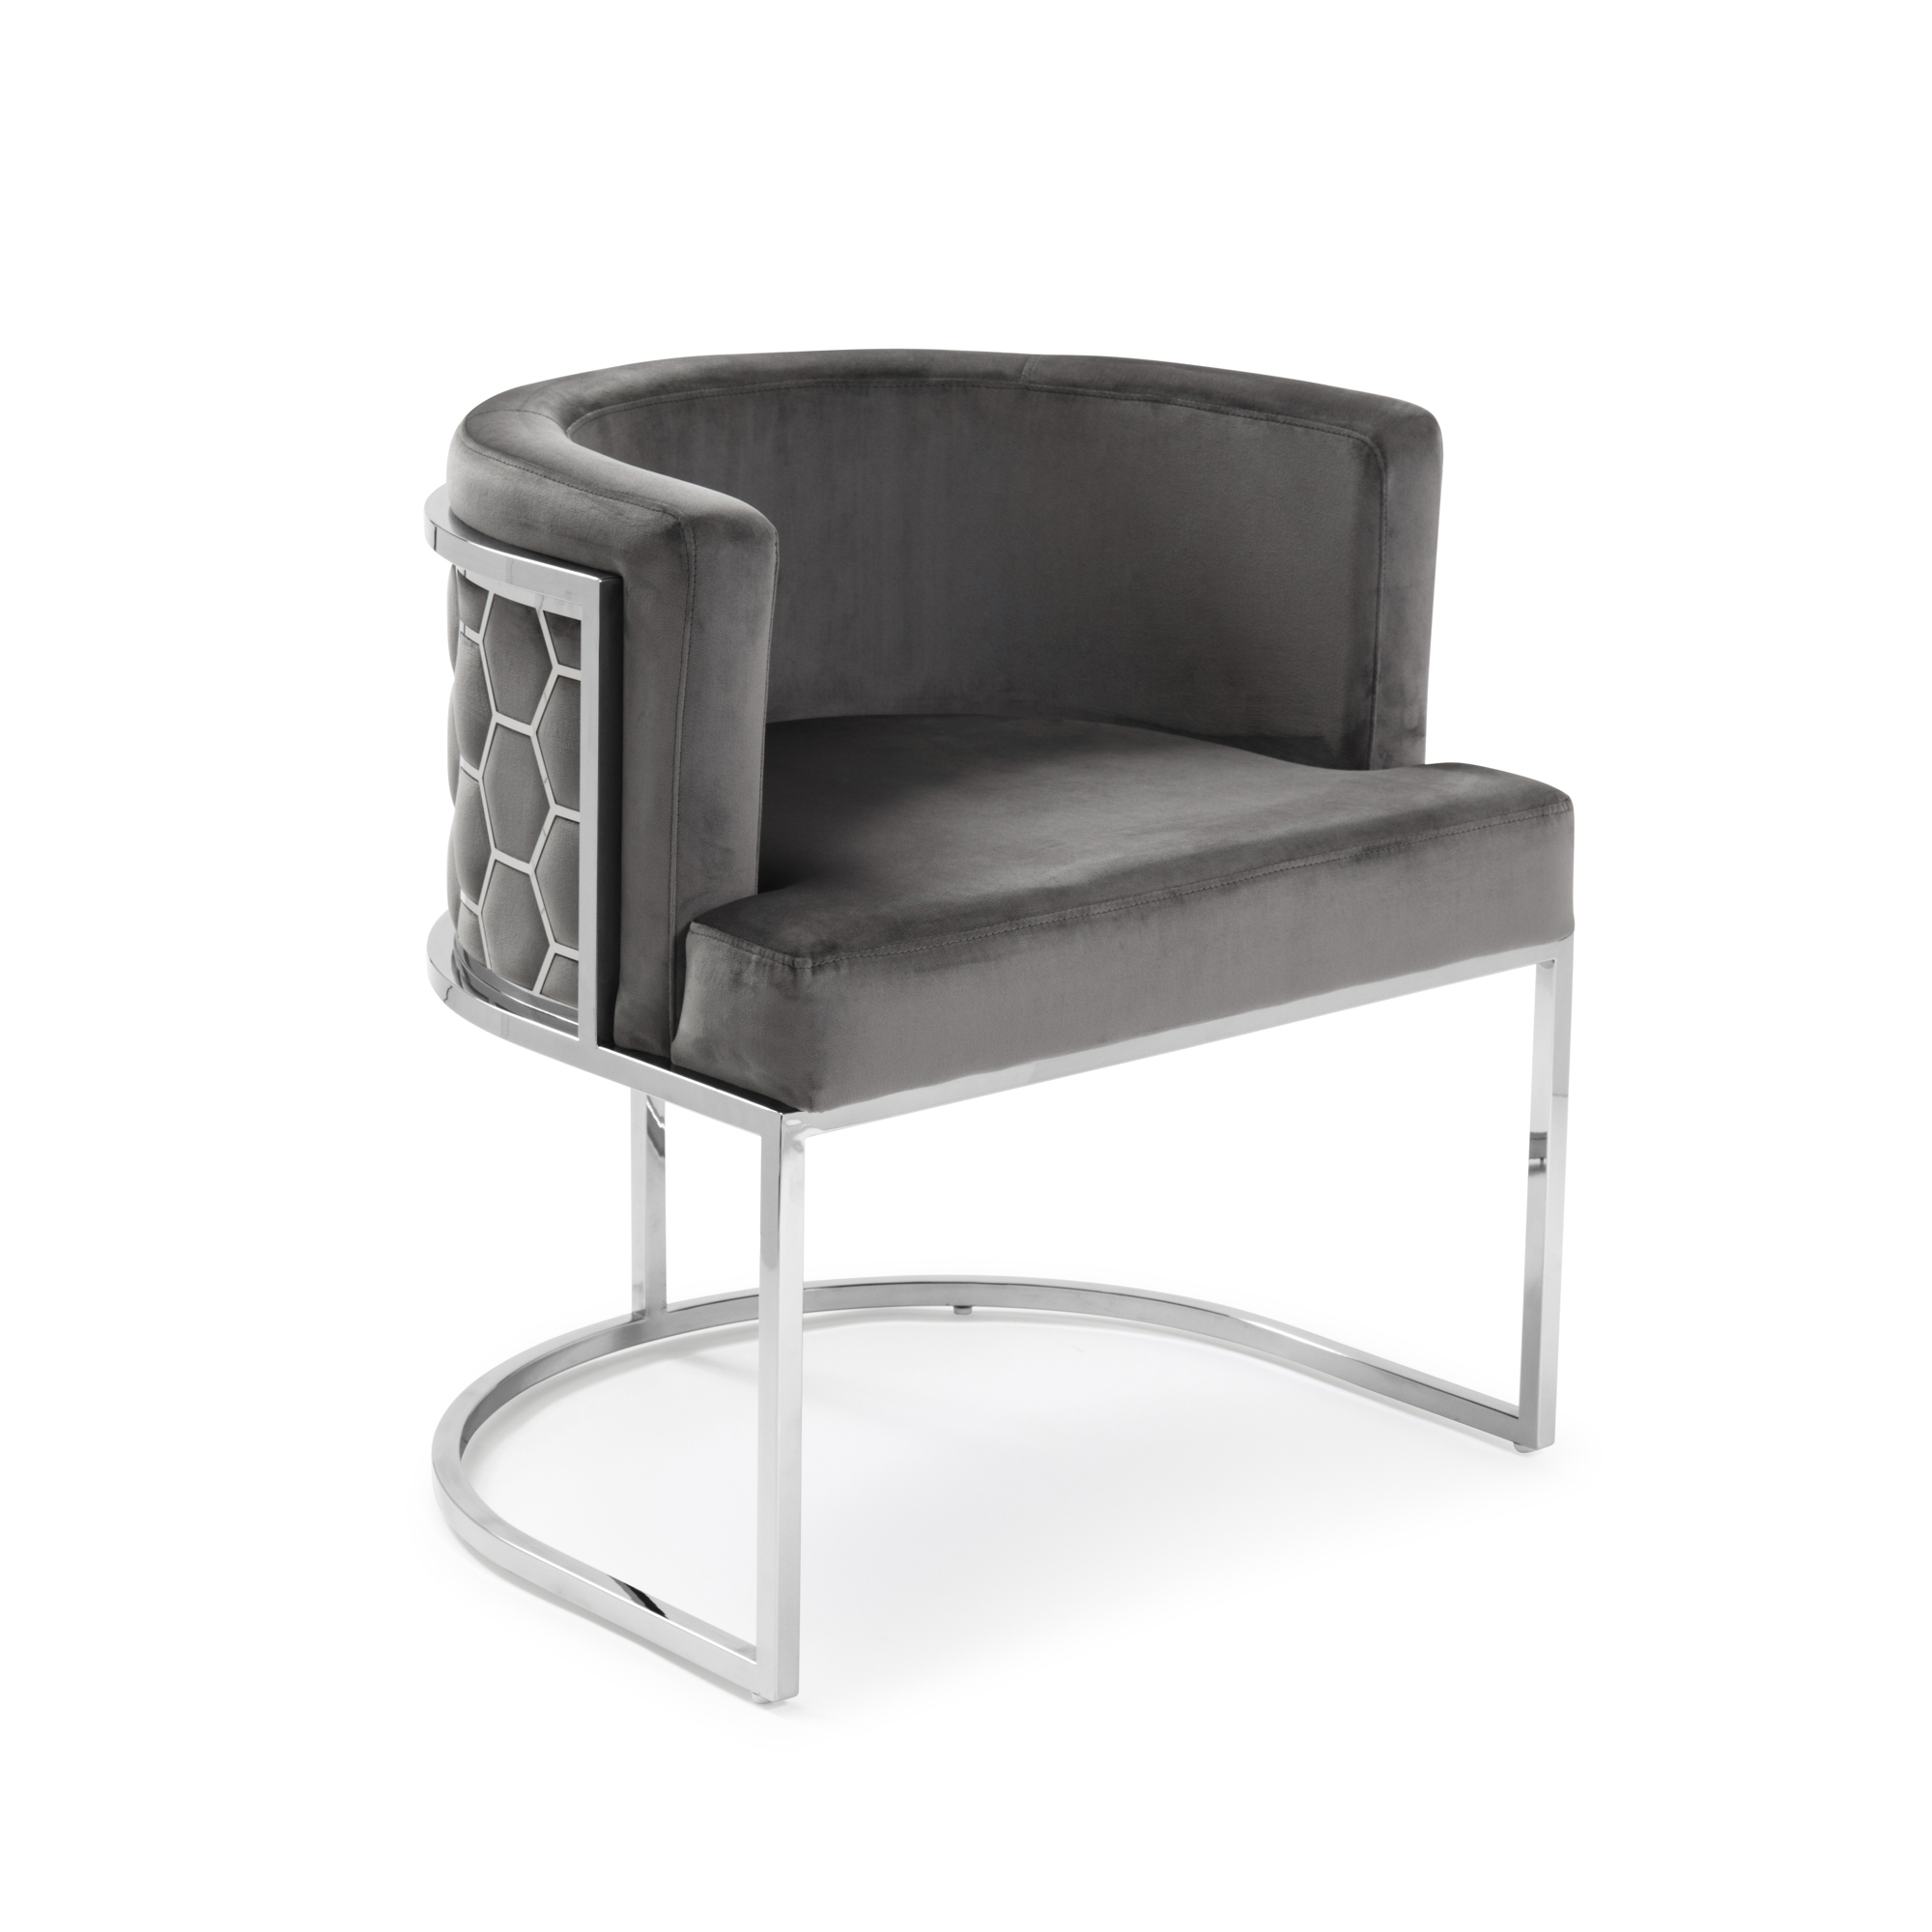 Barcelona Grey Brushed Velvet Dining Chair with a Stainless Steel Frame